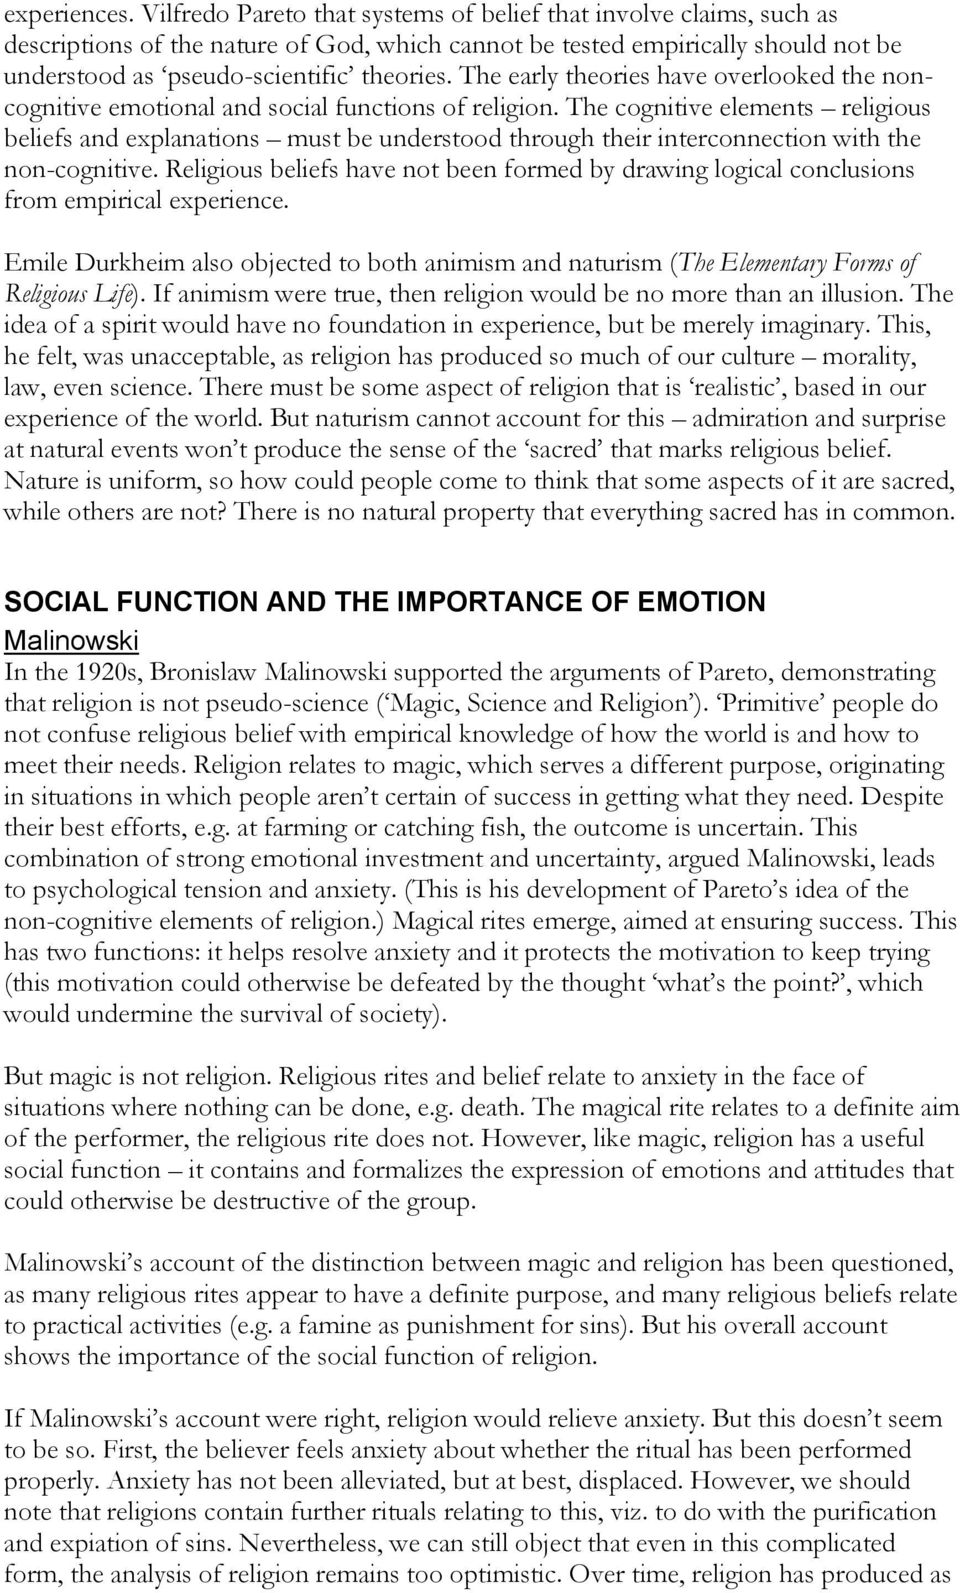 The early theories have overlooked the noncognitive emotional and social functions of religion.